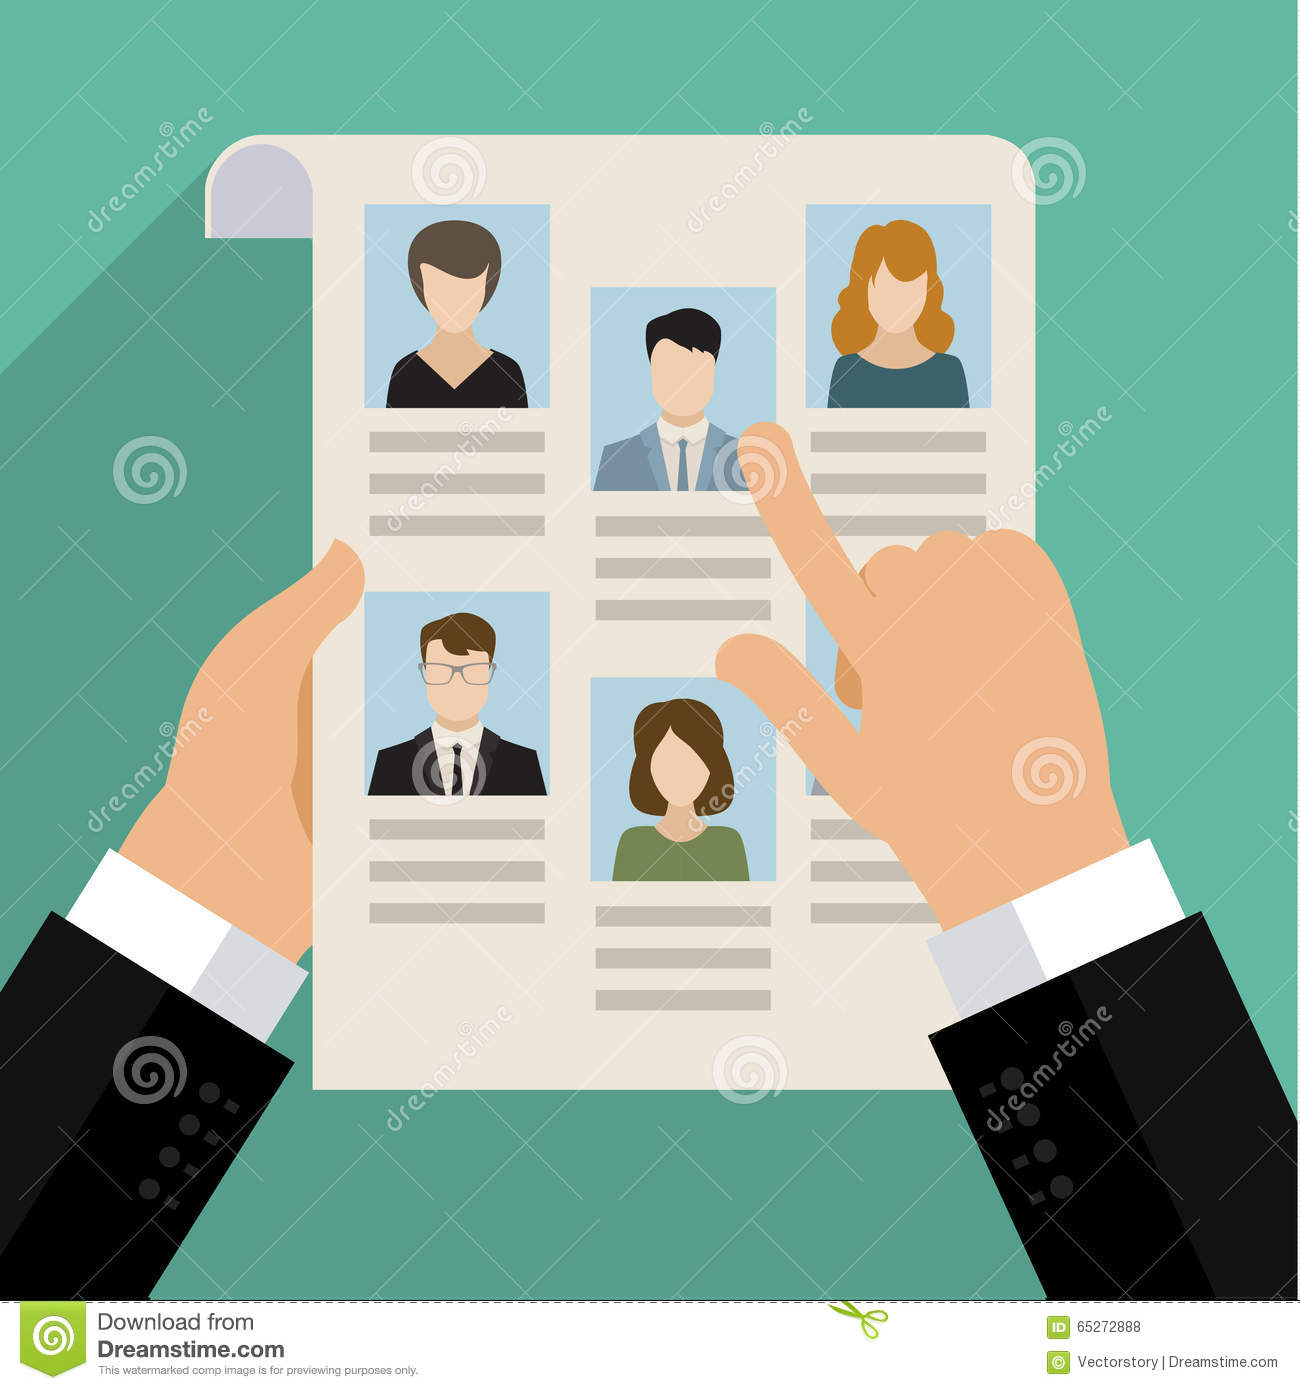 concept of searching for professional stuff stock vector image concept of searching for professional stuff